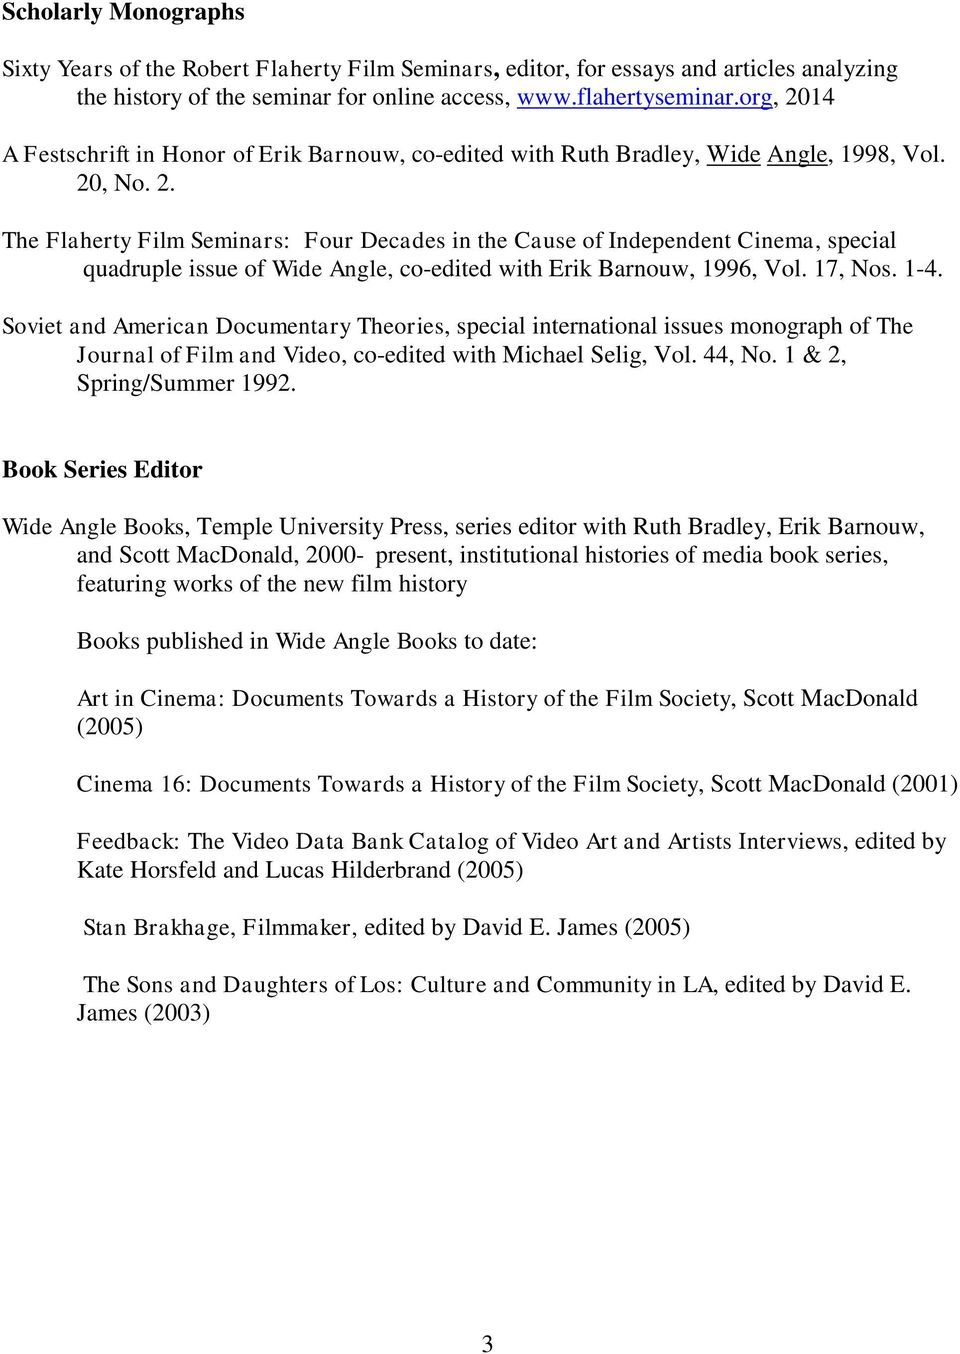 17, Nos. 1-4. Soviet and American Documentary Theories, special international issues monograph of The Journal of Film and Video, co-edited with Michael Selig, Vol. 44, No. 1 & 2, Spring/Summer 1992.